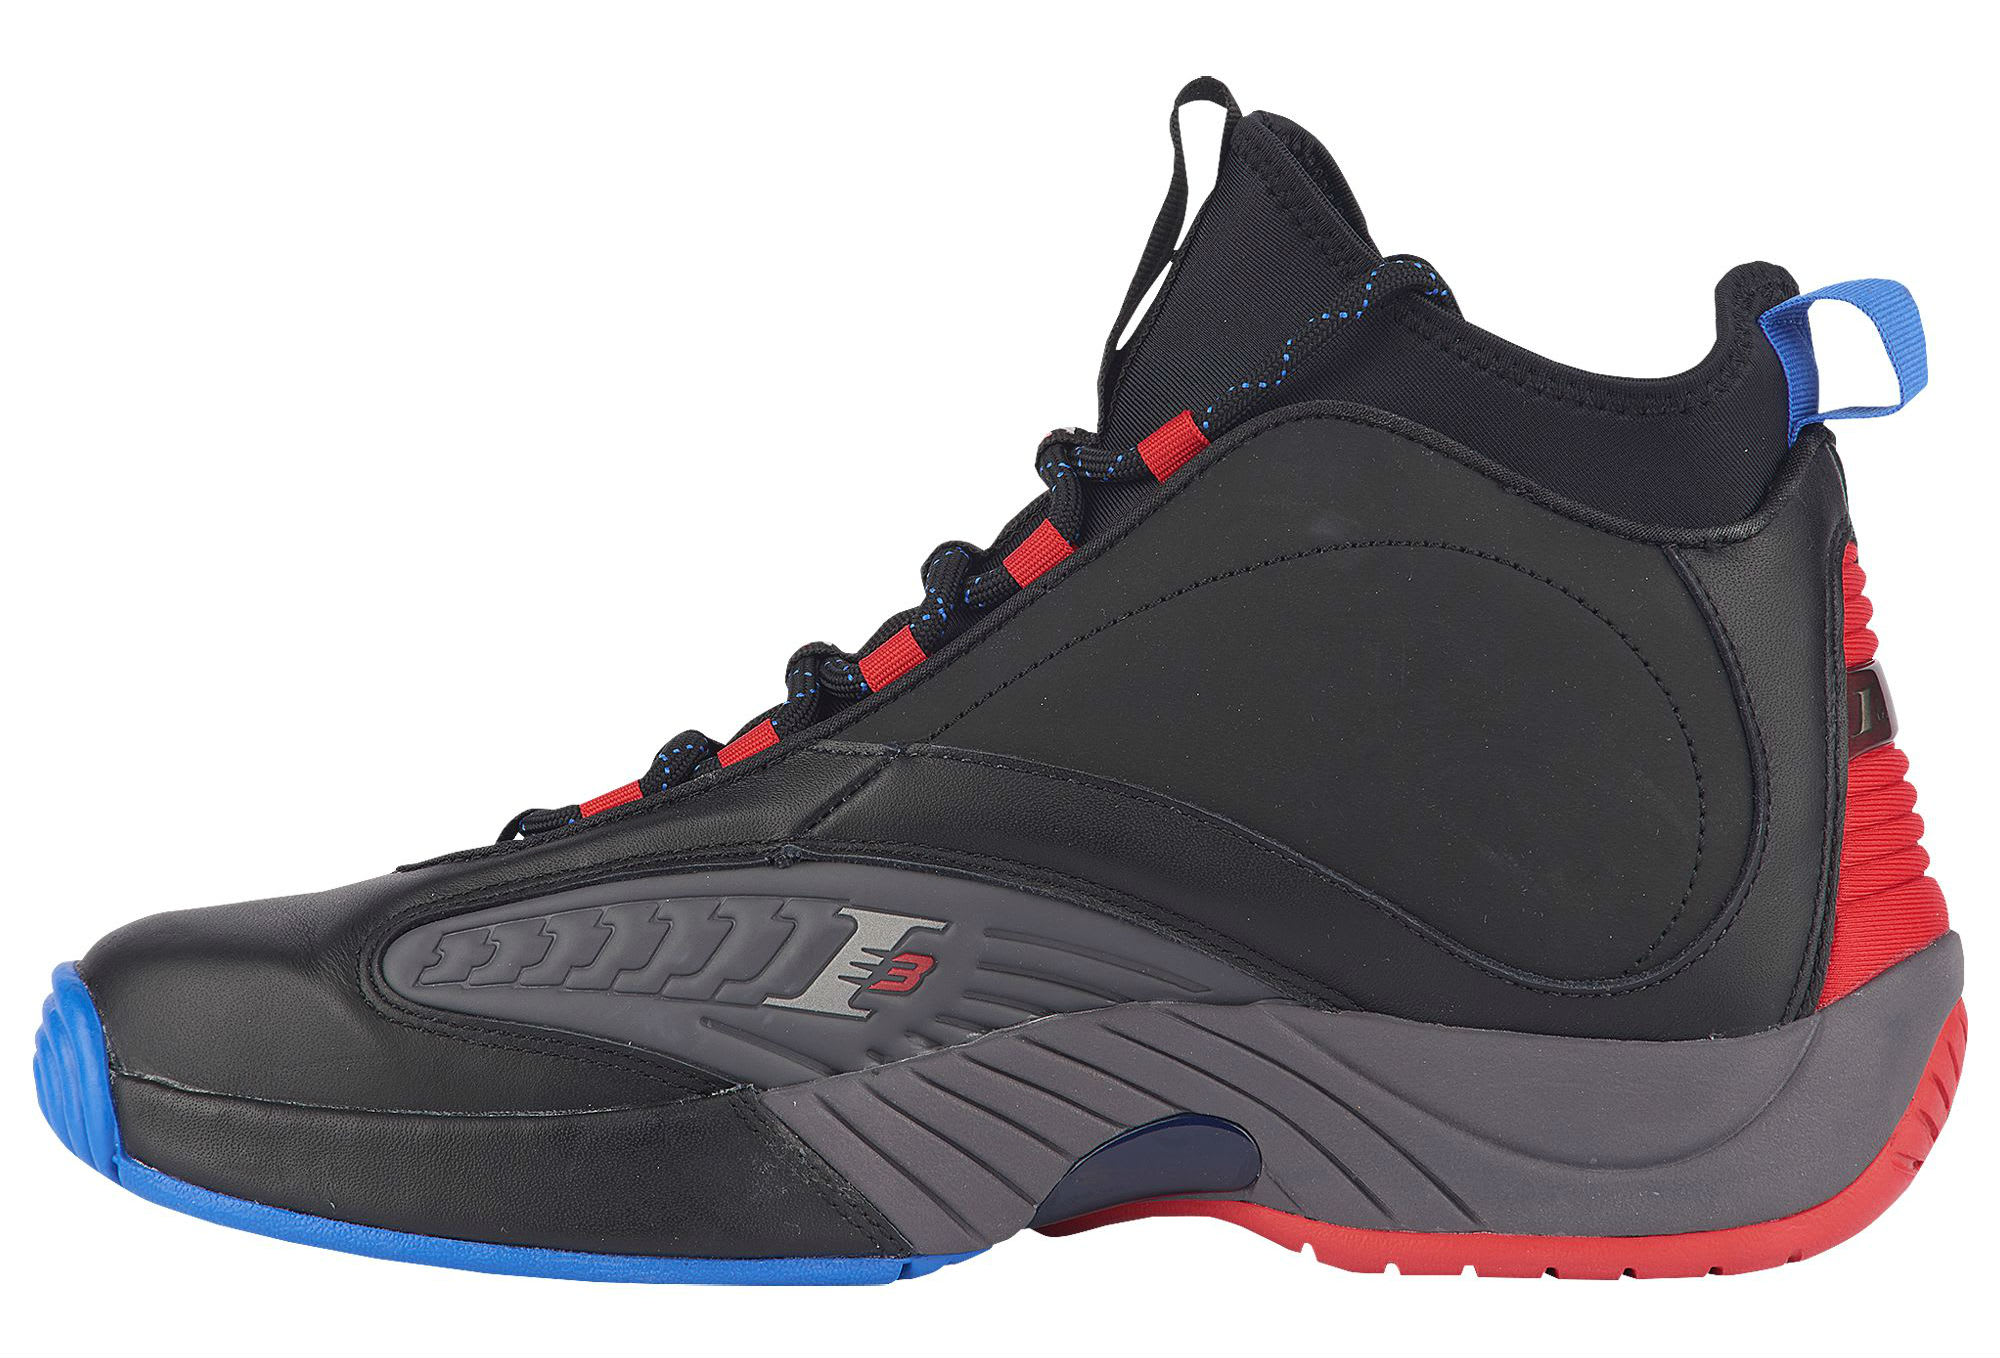 Reebok Answer 4.5 Black Ash Grey Primal Red Vital Blue Release Date CN5841 Medial